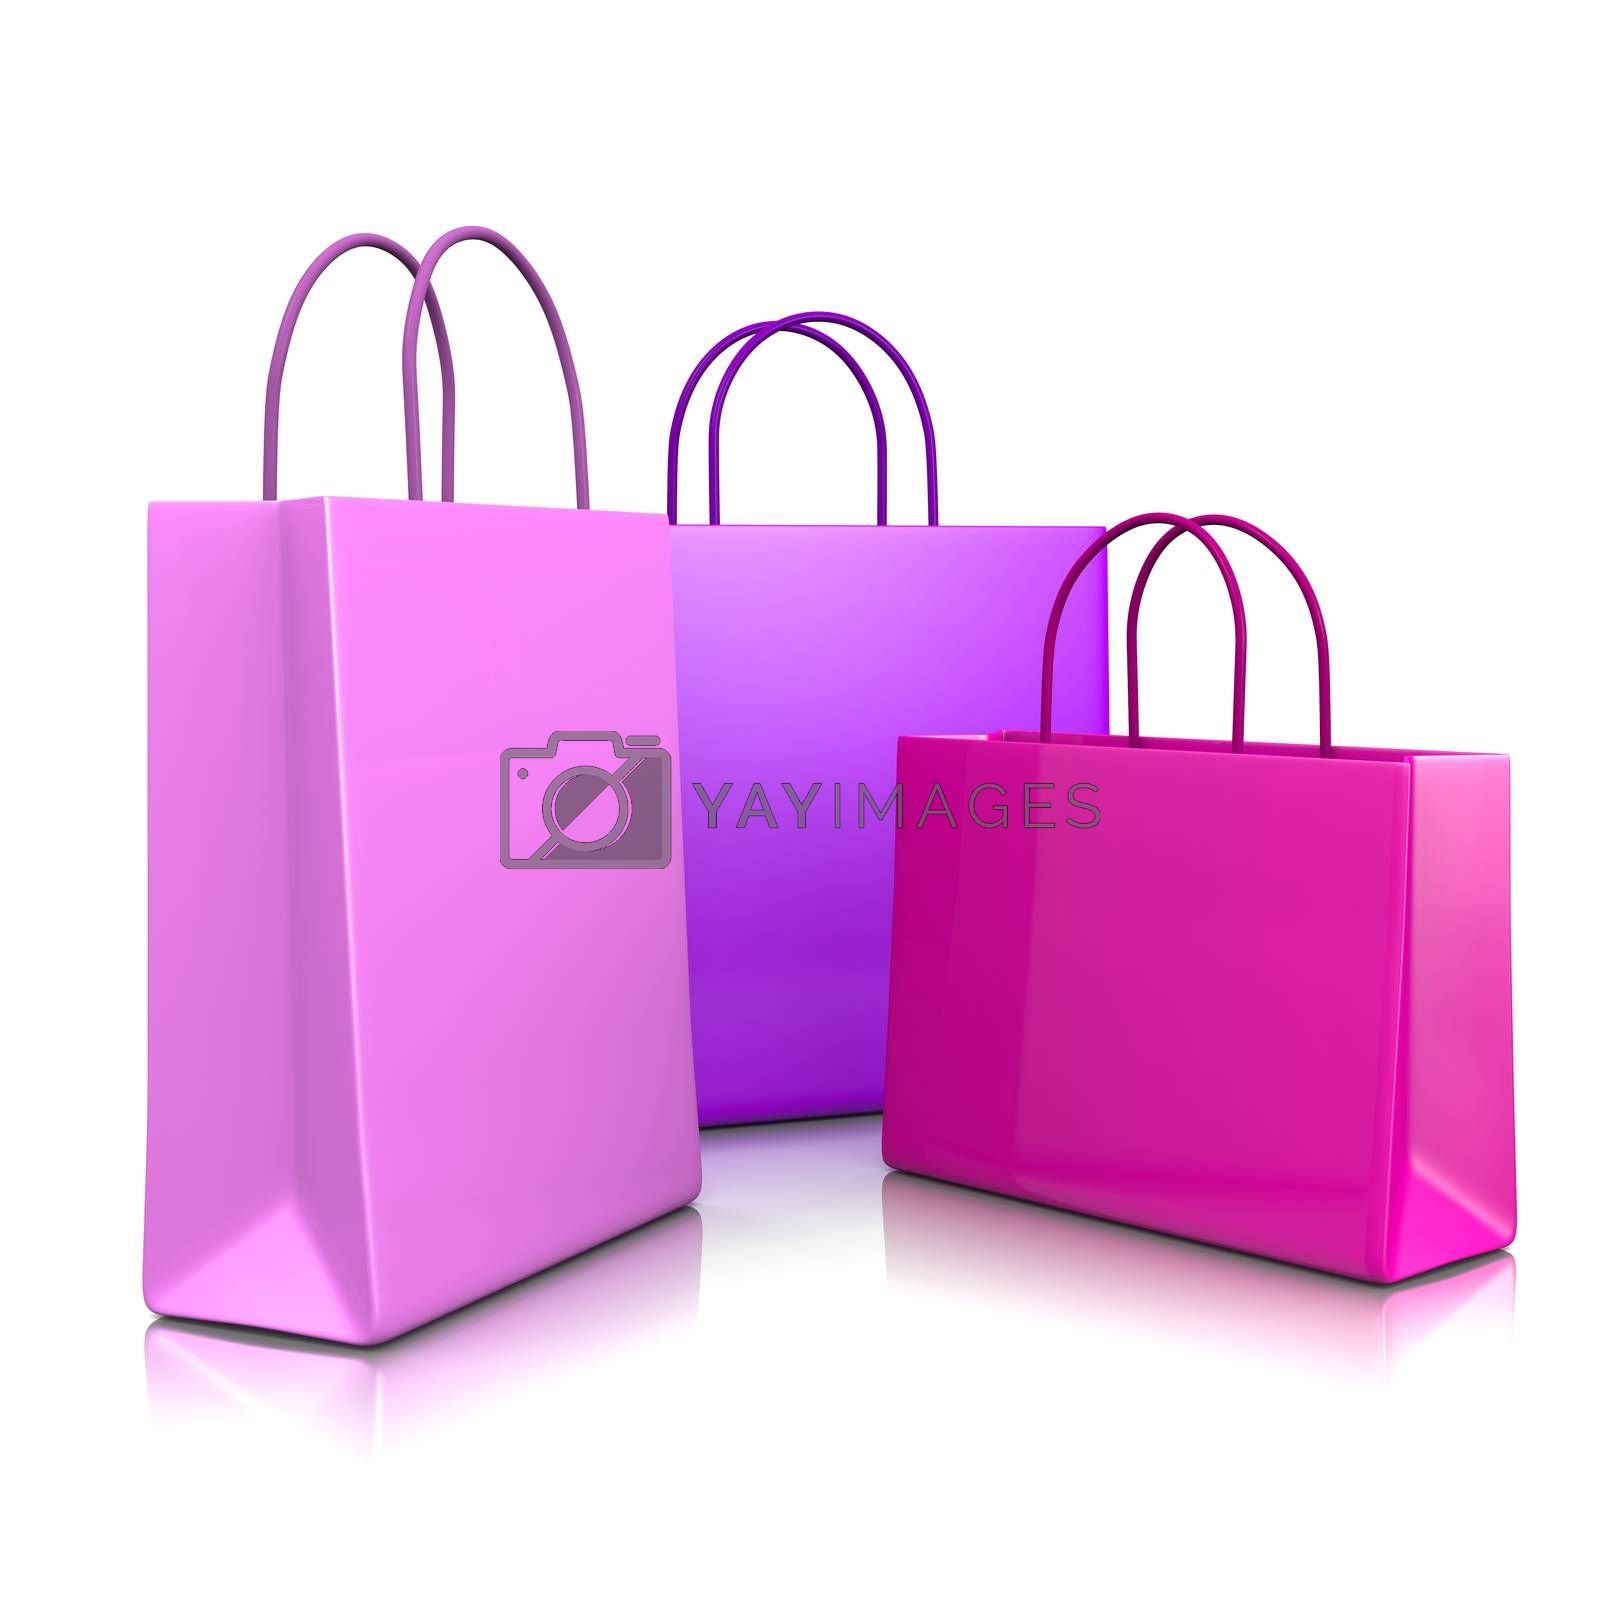 Pink and Violet Fashion Color Shopping Bags Isolated on White Background 3D Illustration